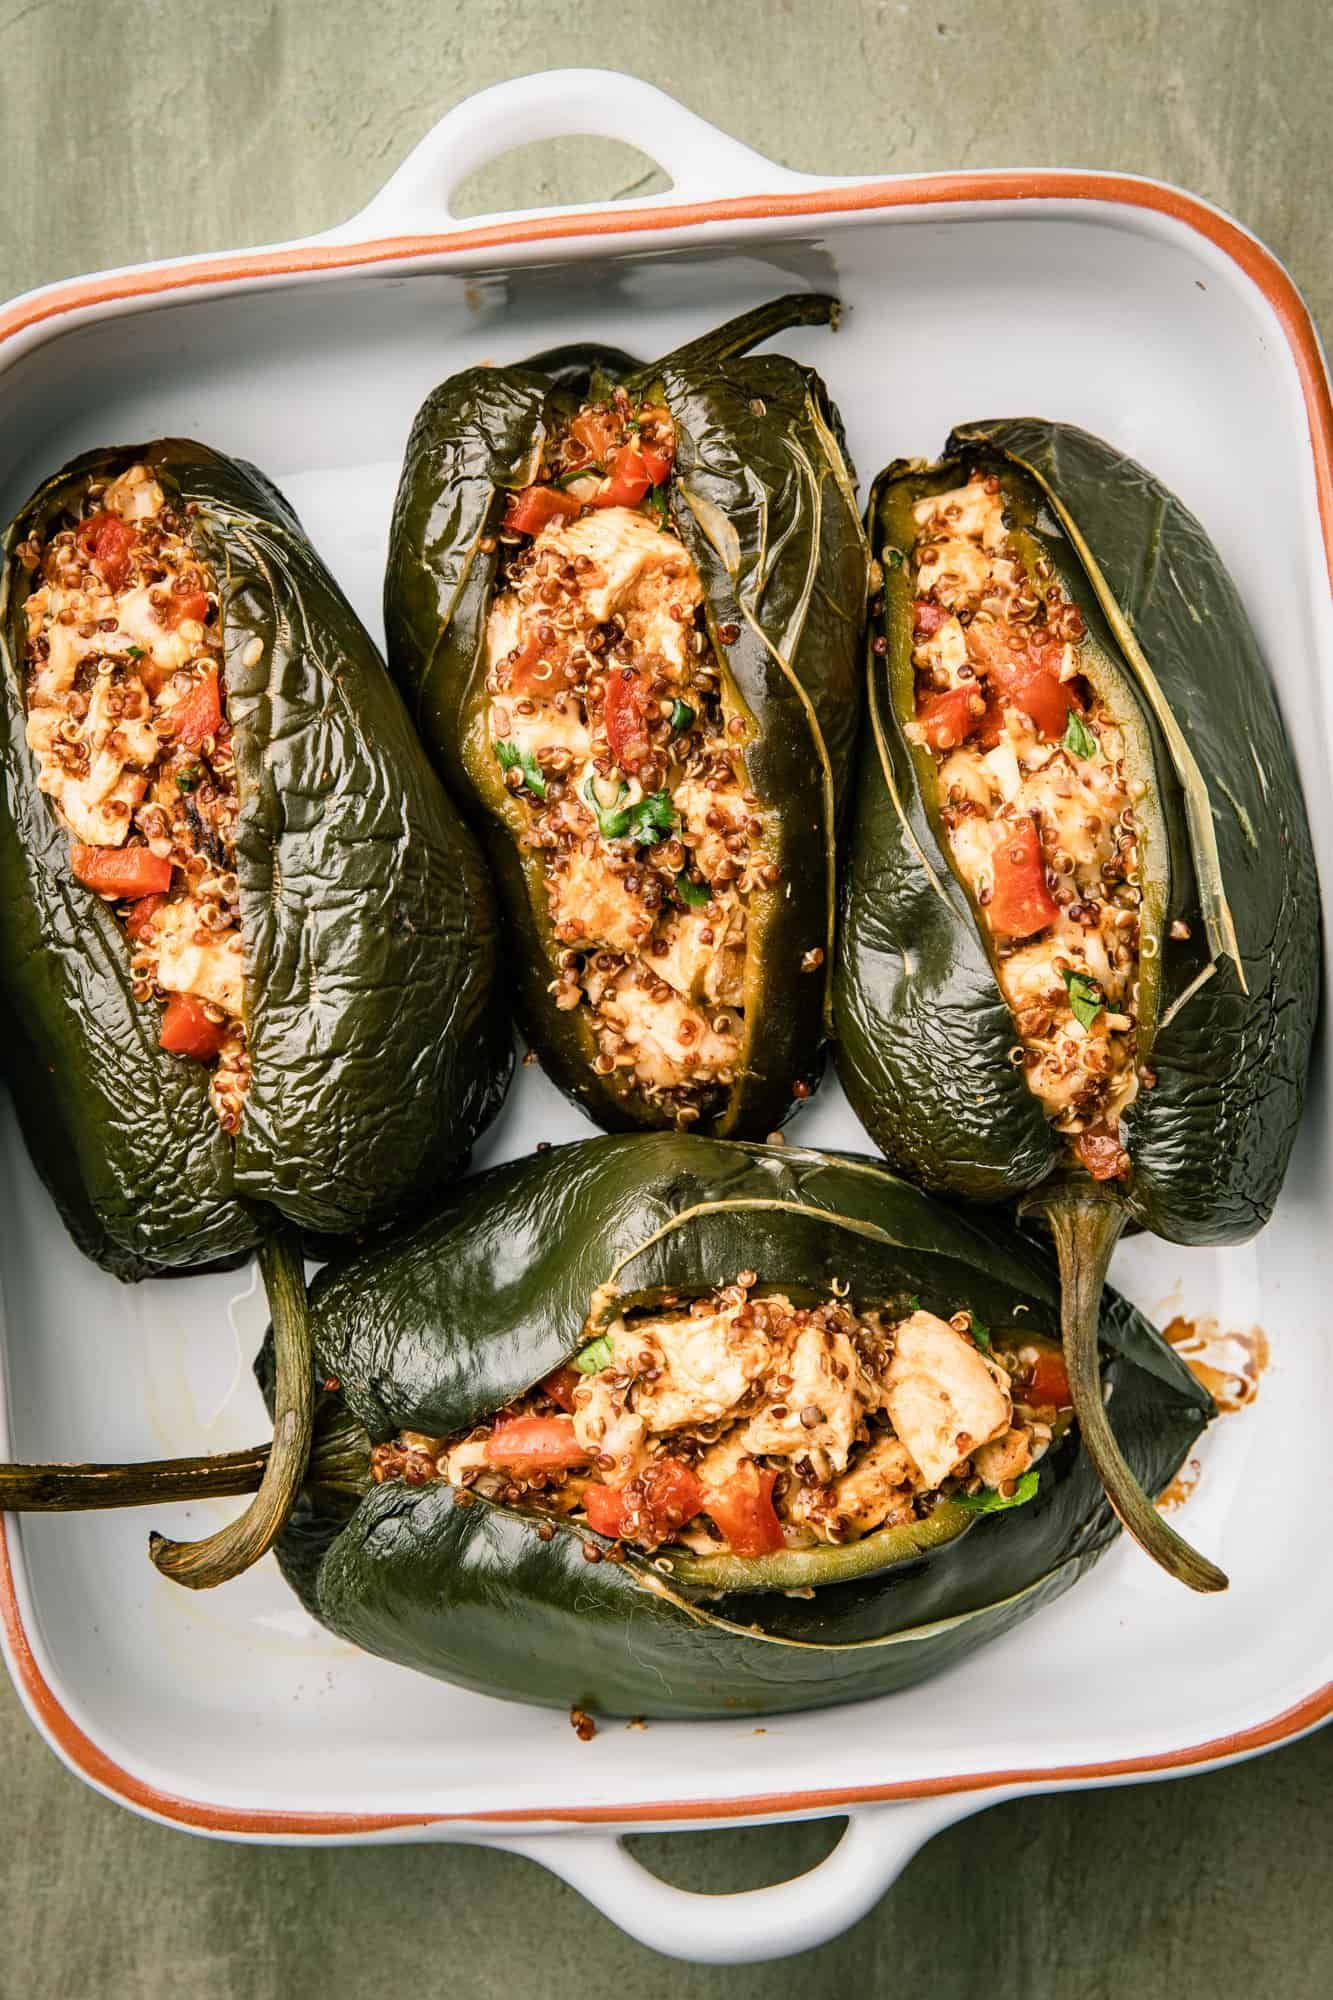 Chicken Stuffed Poblano Peppers With Cheese Joanie Simon Recipe Stuffed Poblano Peppers Stuffed Peppers Poblano